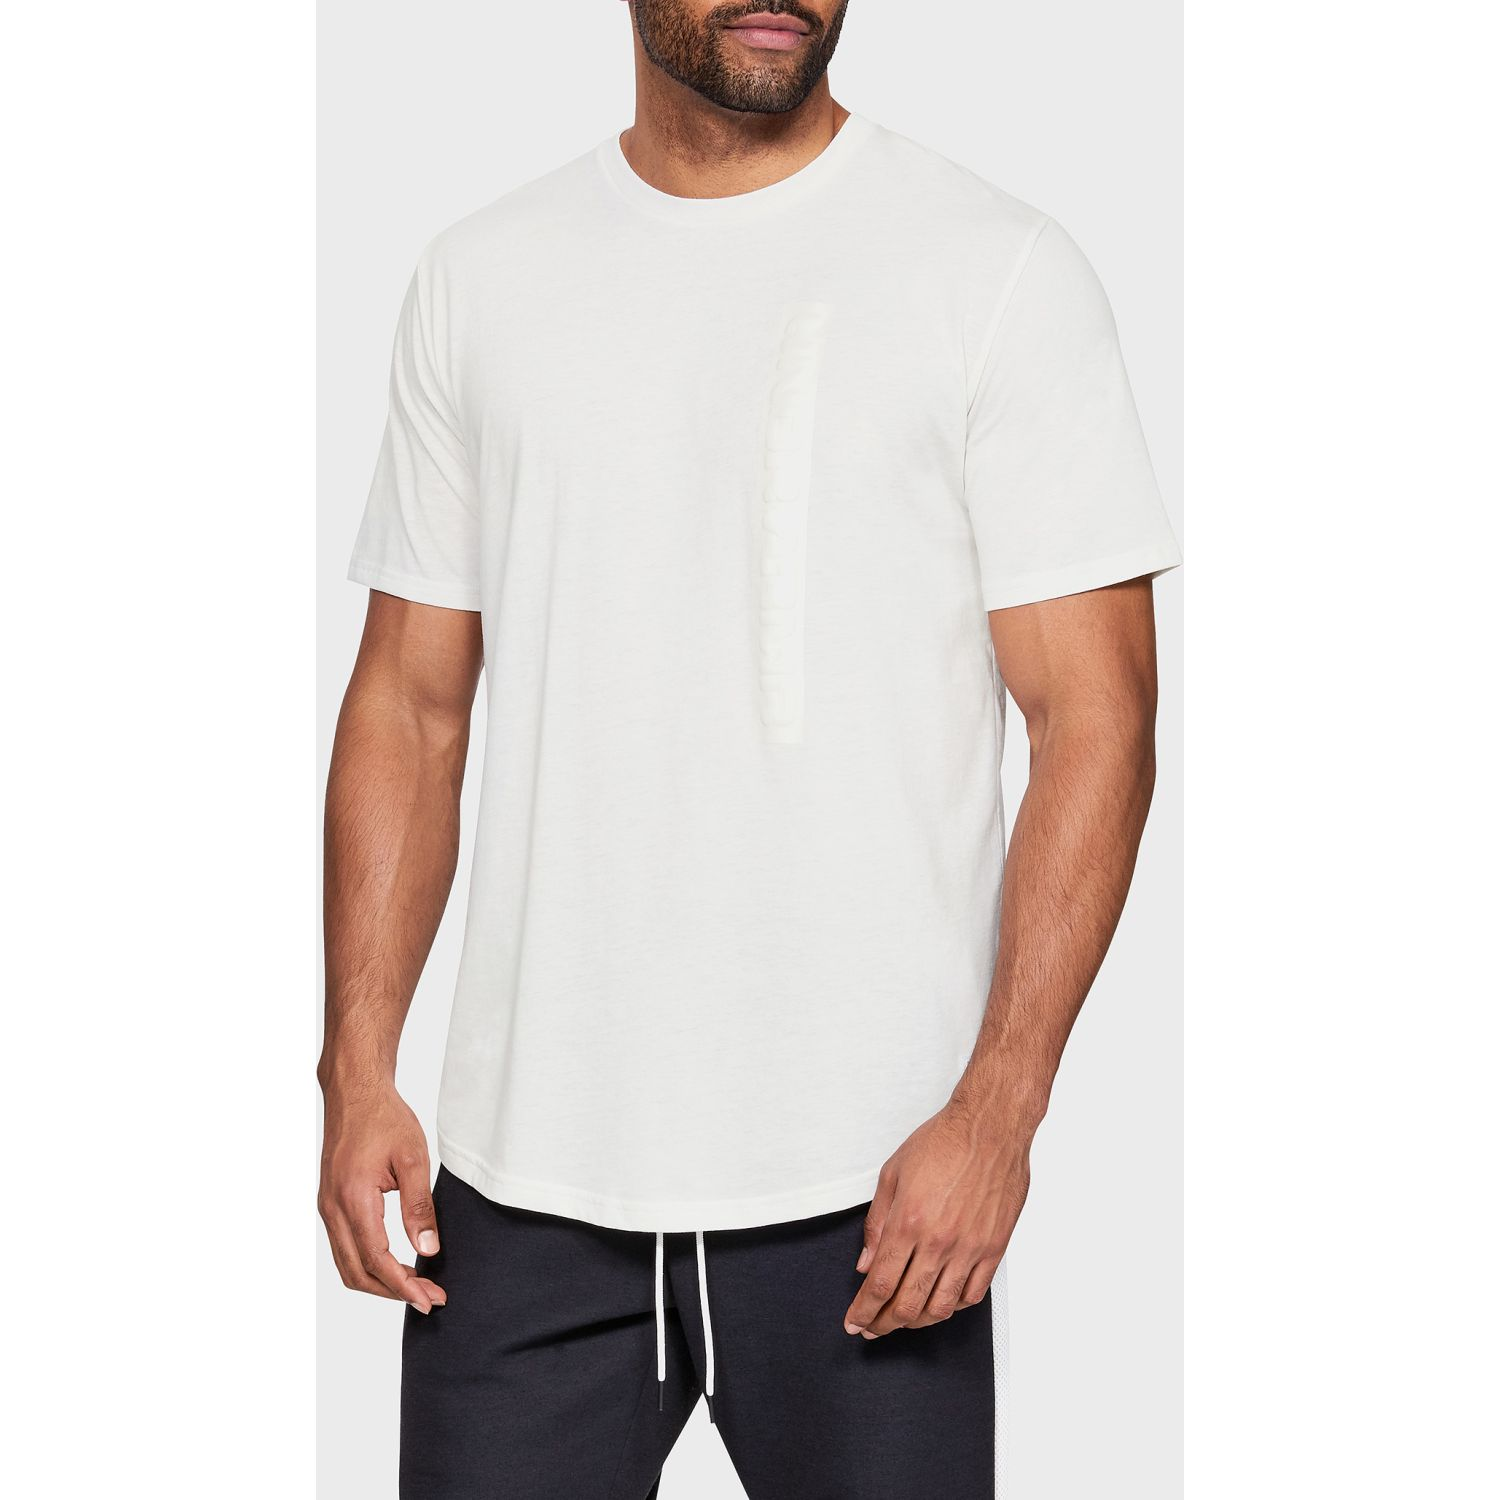 Under Armour ua pursuit wordmark core tee Blanco Camisetas y Polos Deportivos